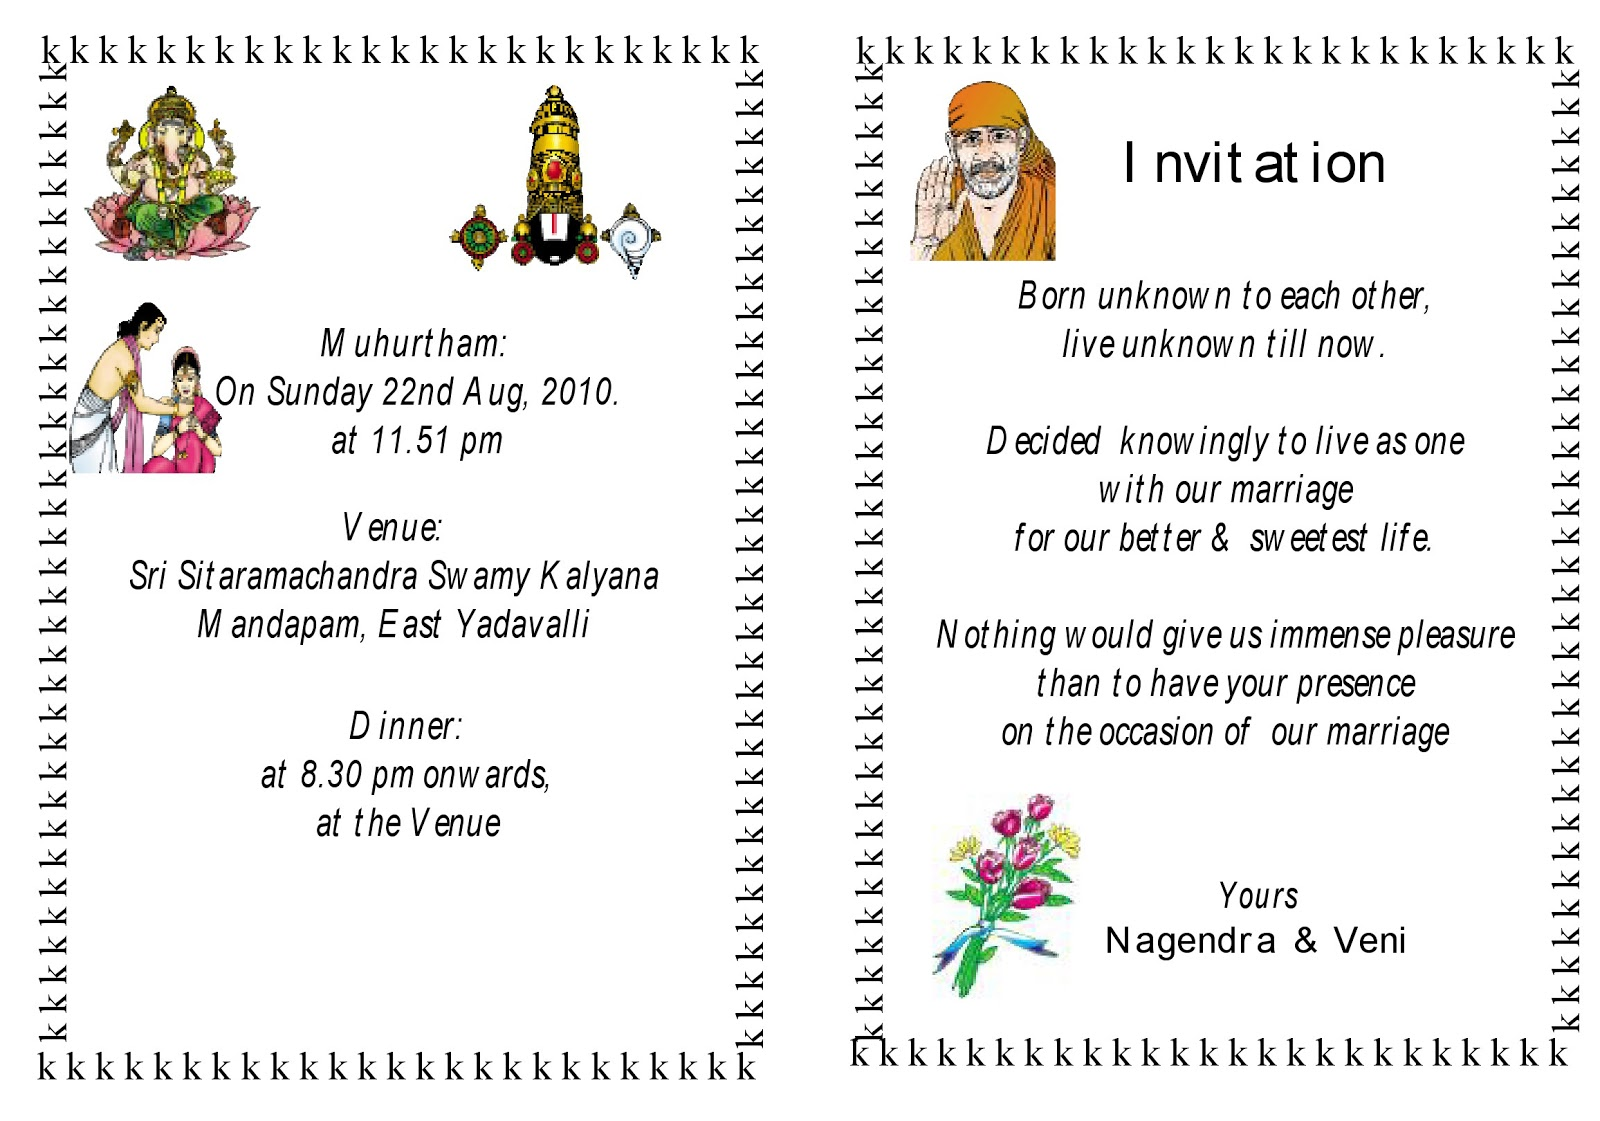 Personal Wedding Invitation Matter For Friends with great invitations sample